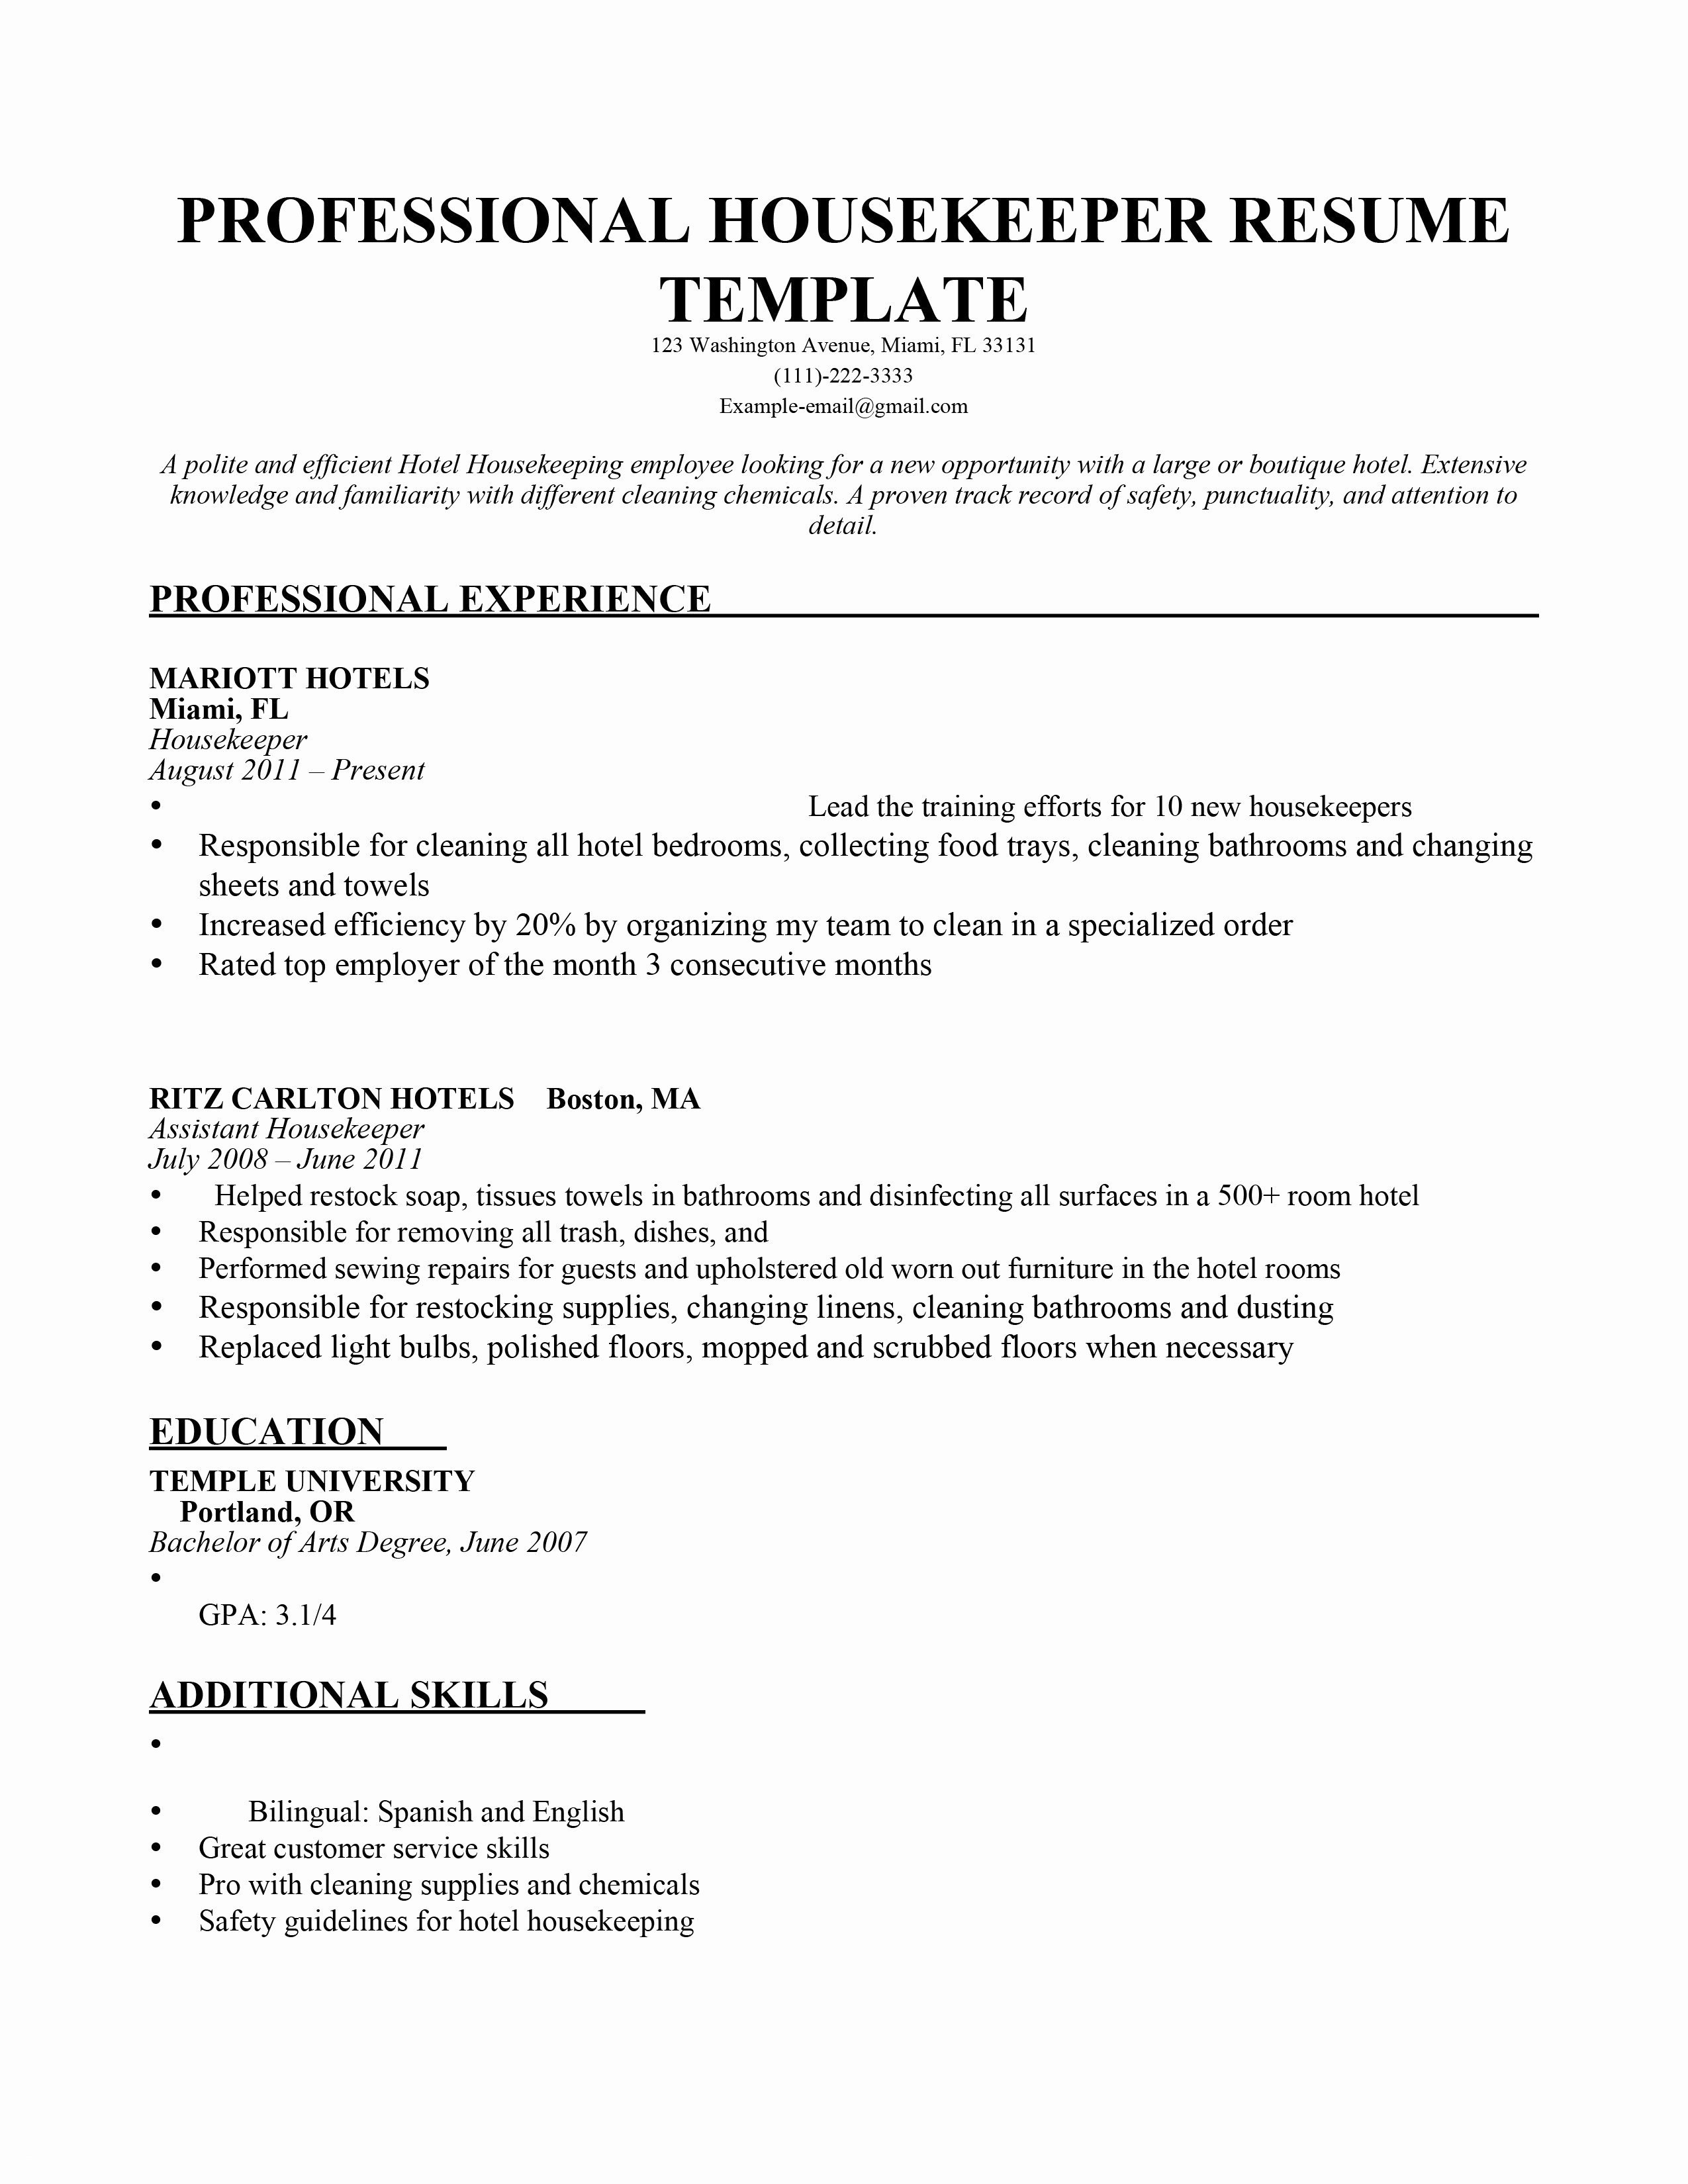 House Keeping Resume - 19 Hotel Housekeeping Resume